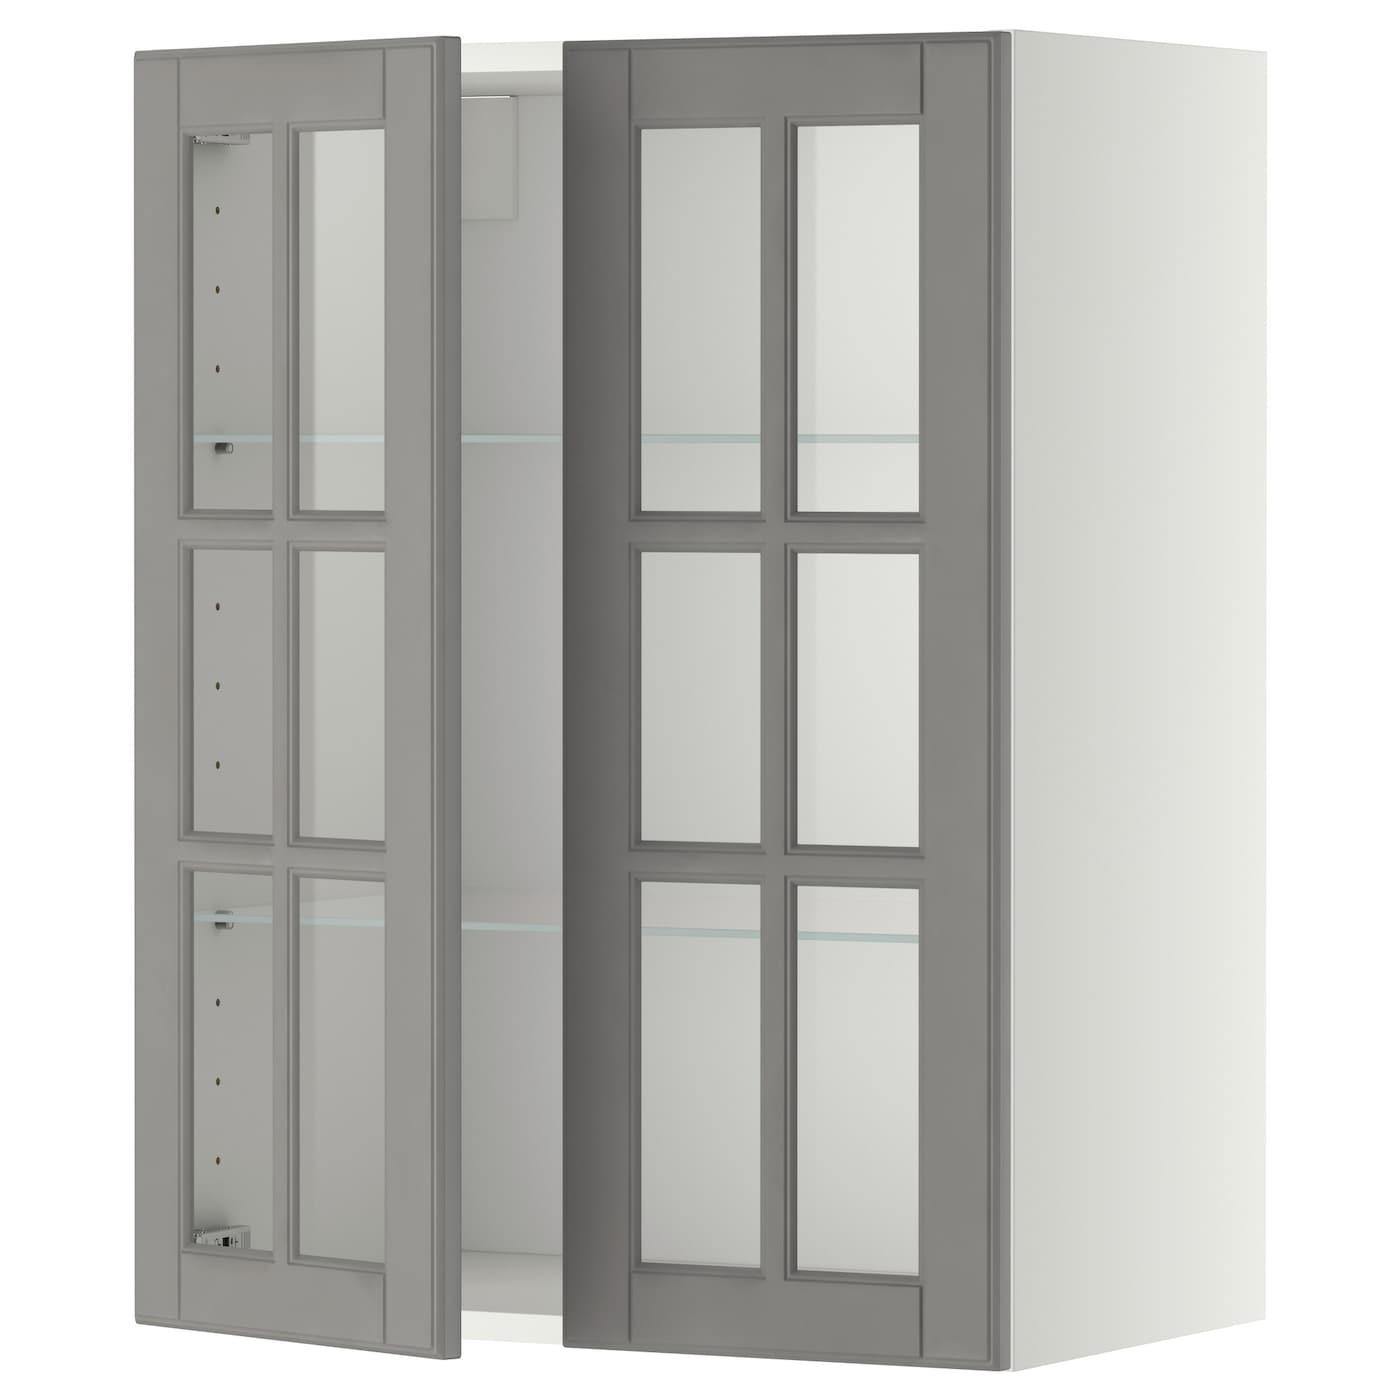 Wall Cabinet W Shelves 2 Glass Drs Metod White Bodbyn Grey